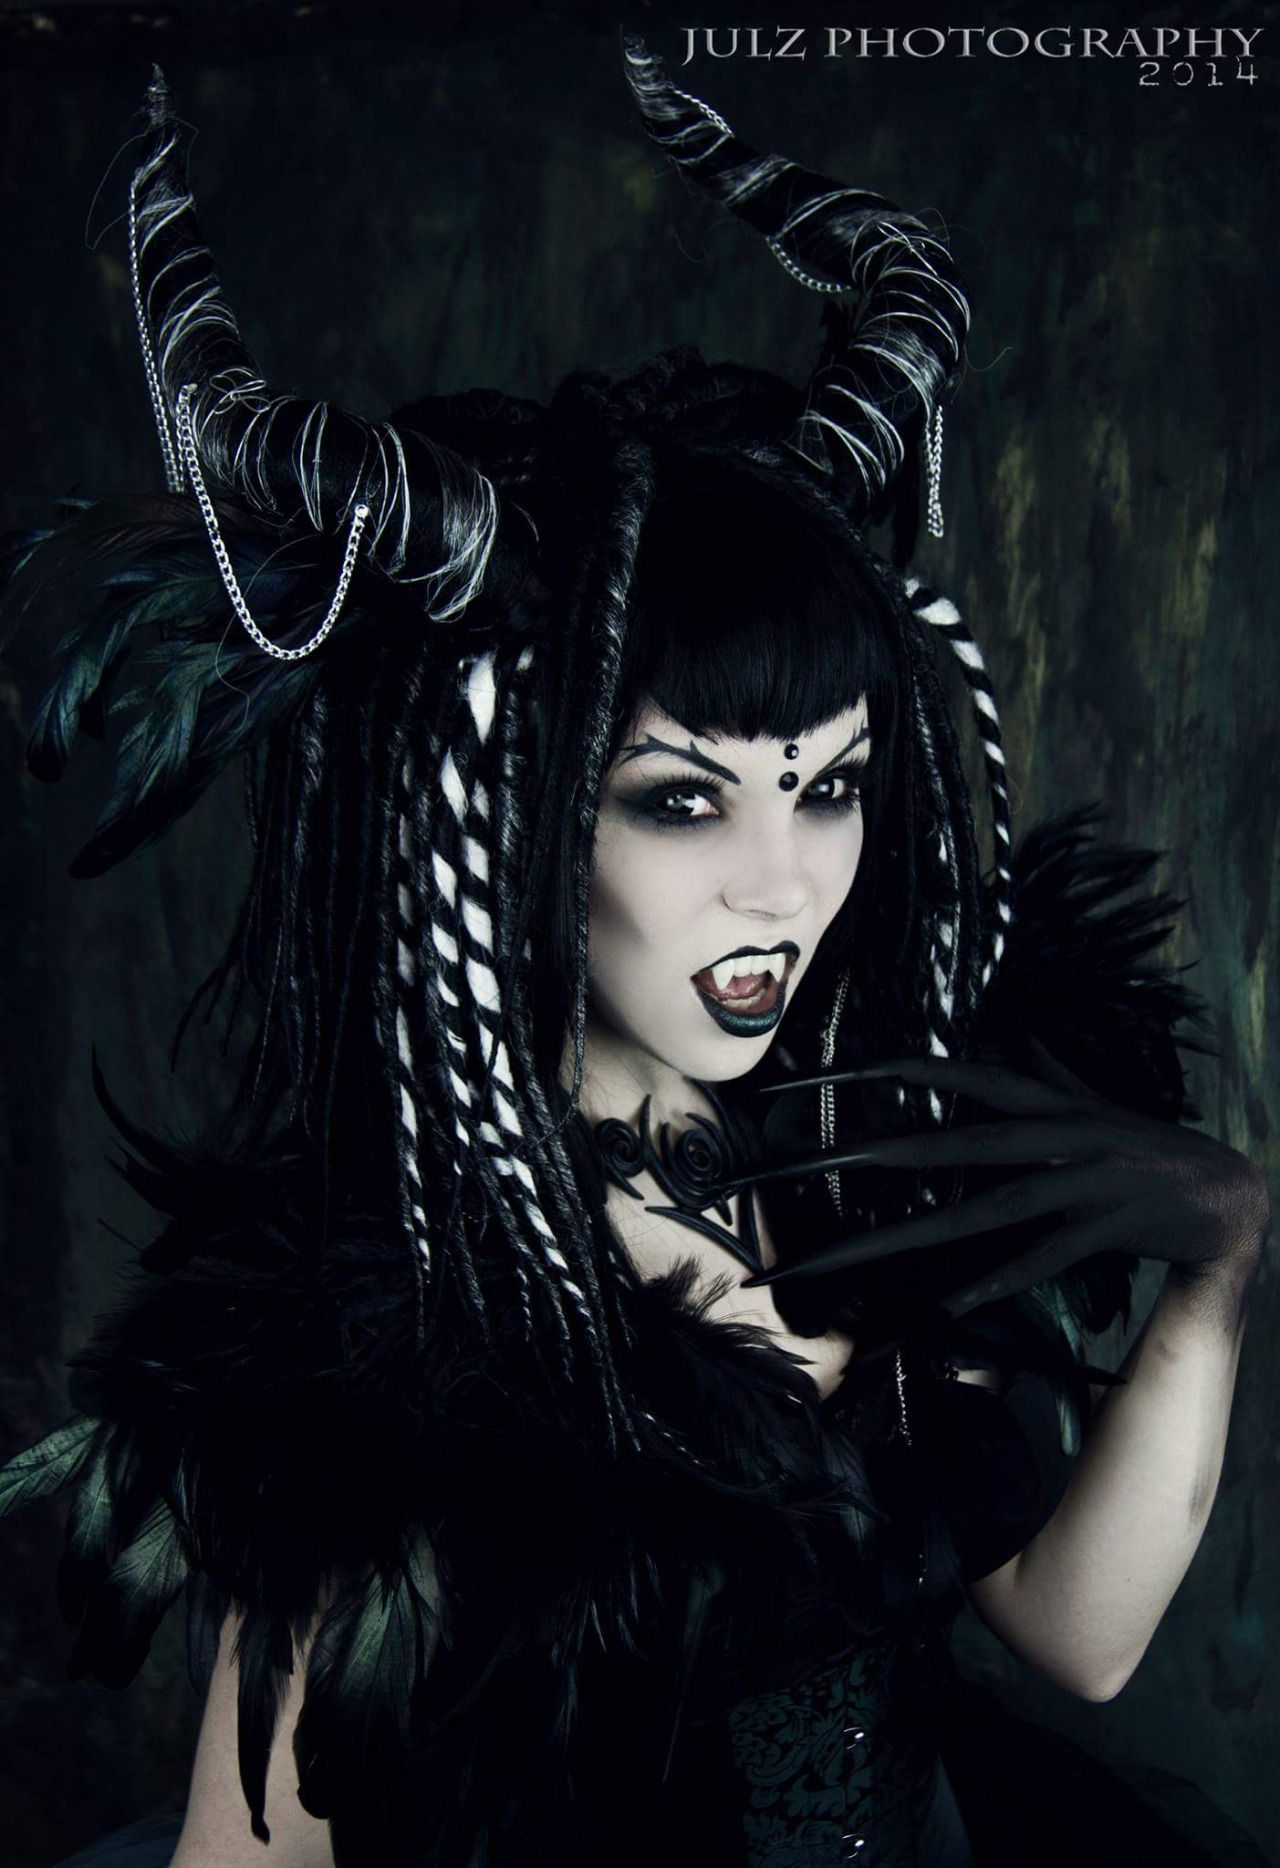 Miss Twisted by Julz photography. Photo, goth demon